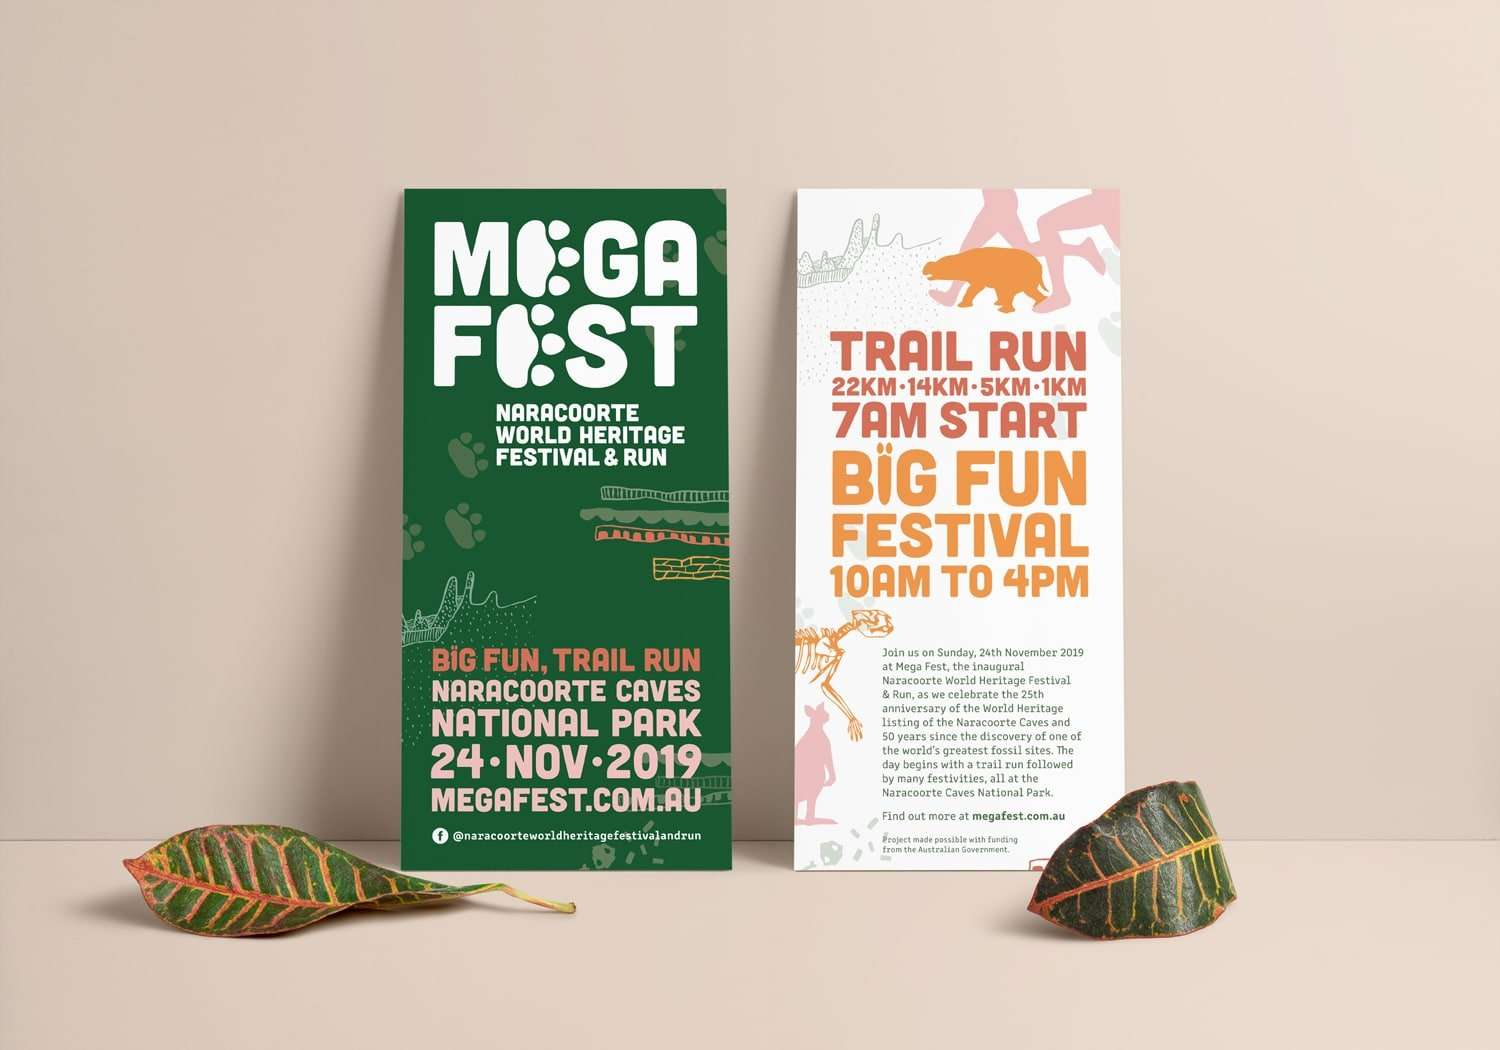 Mega Fest DL flyer designed by Flux Visual Communication